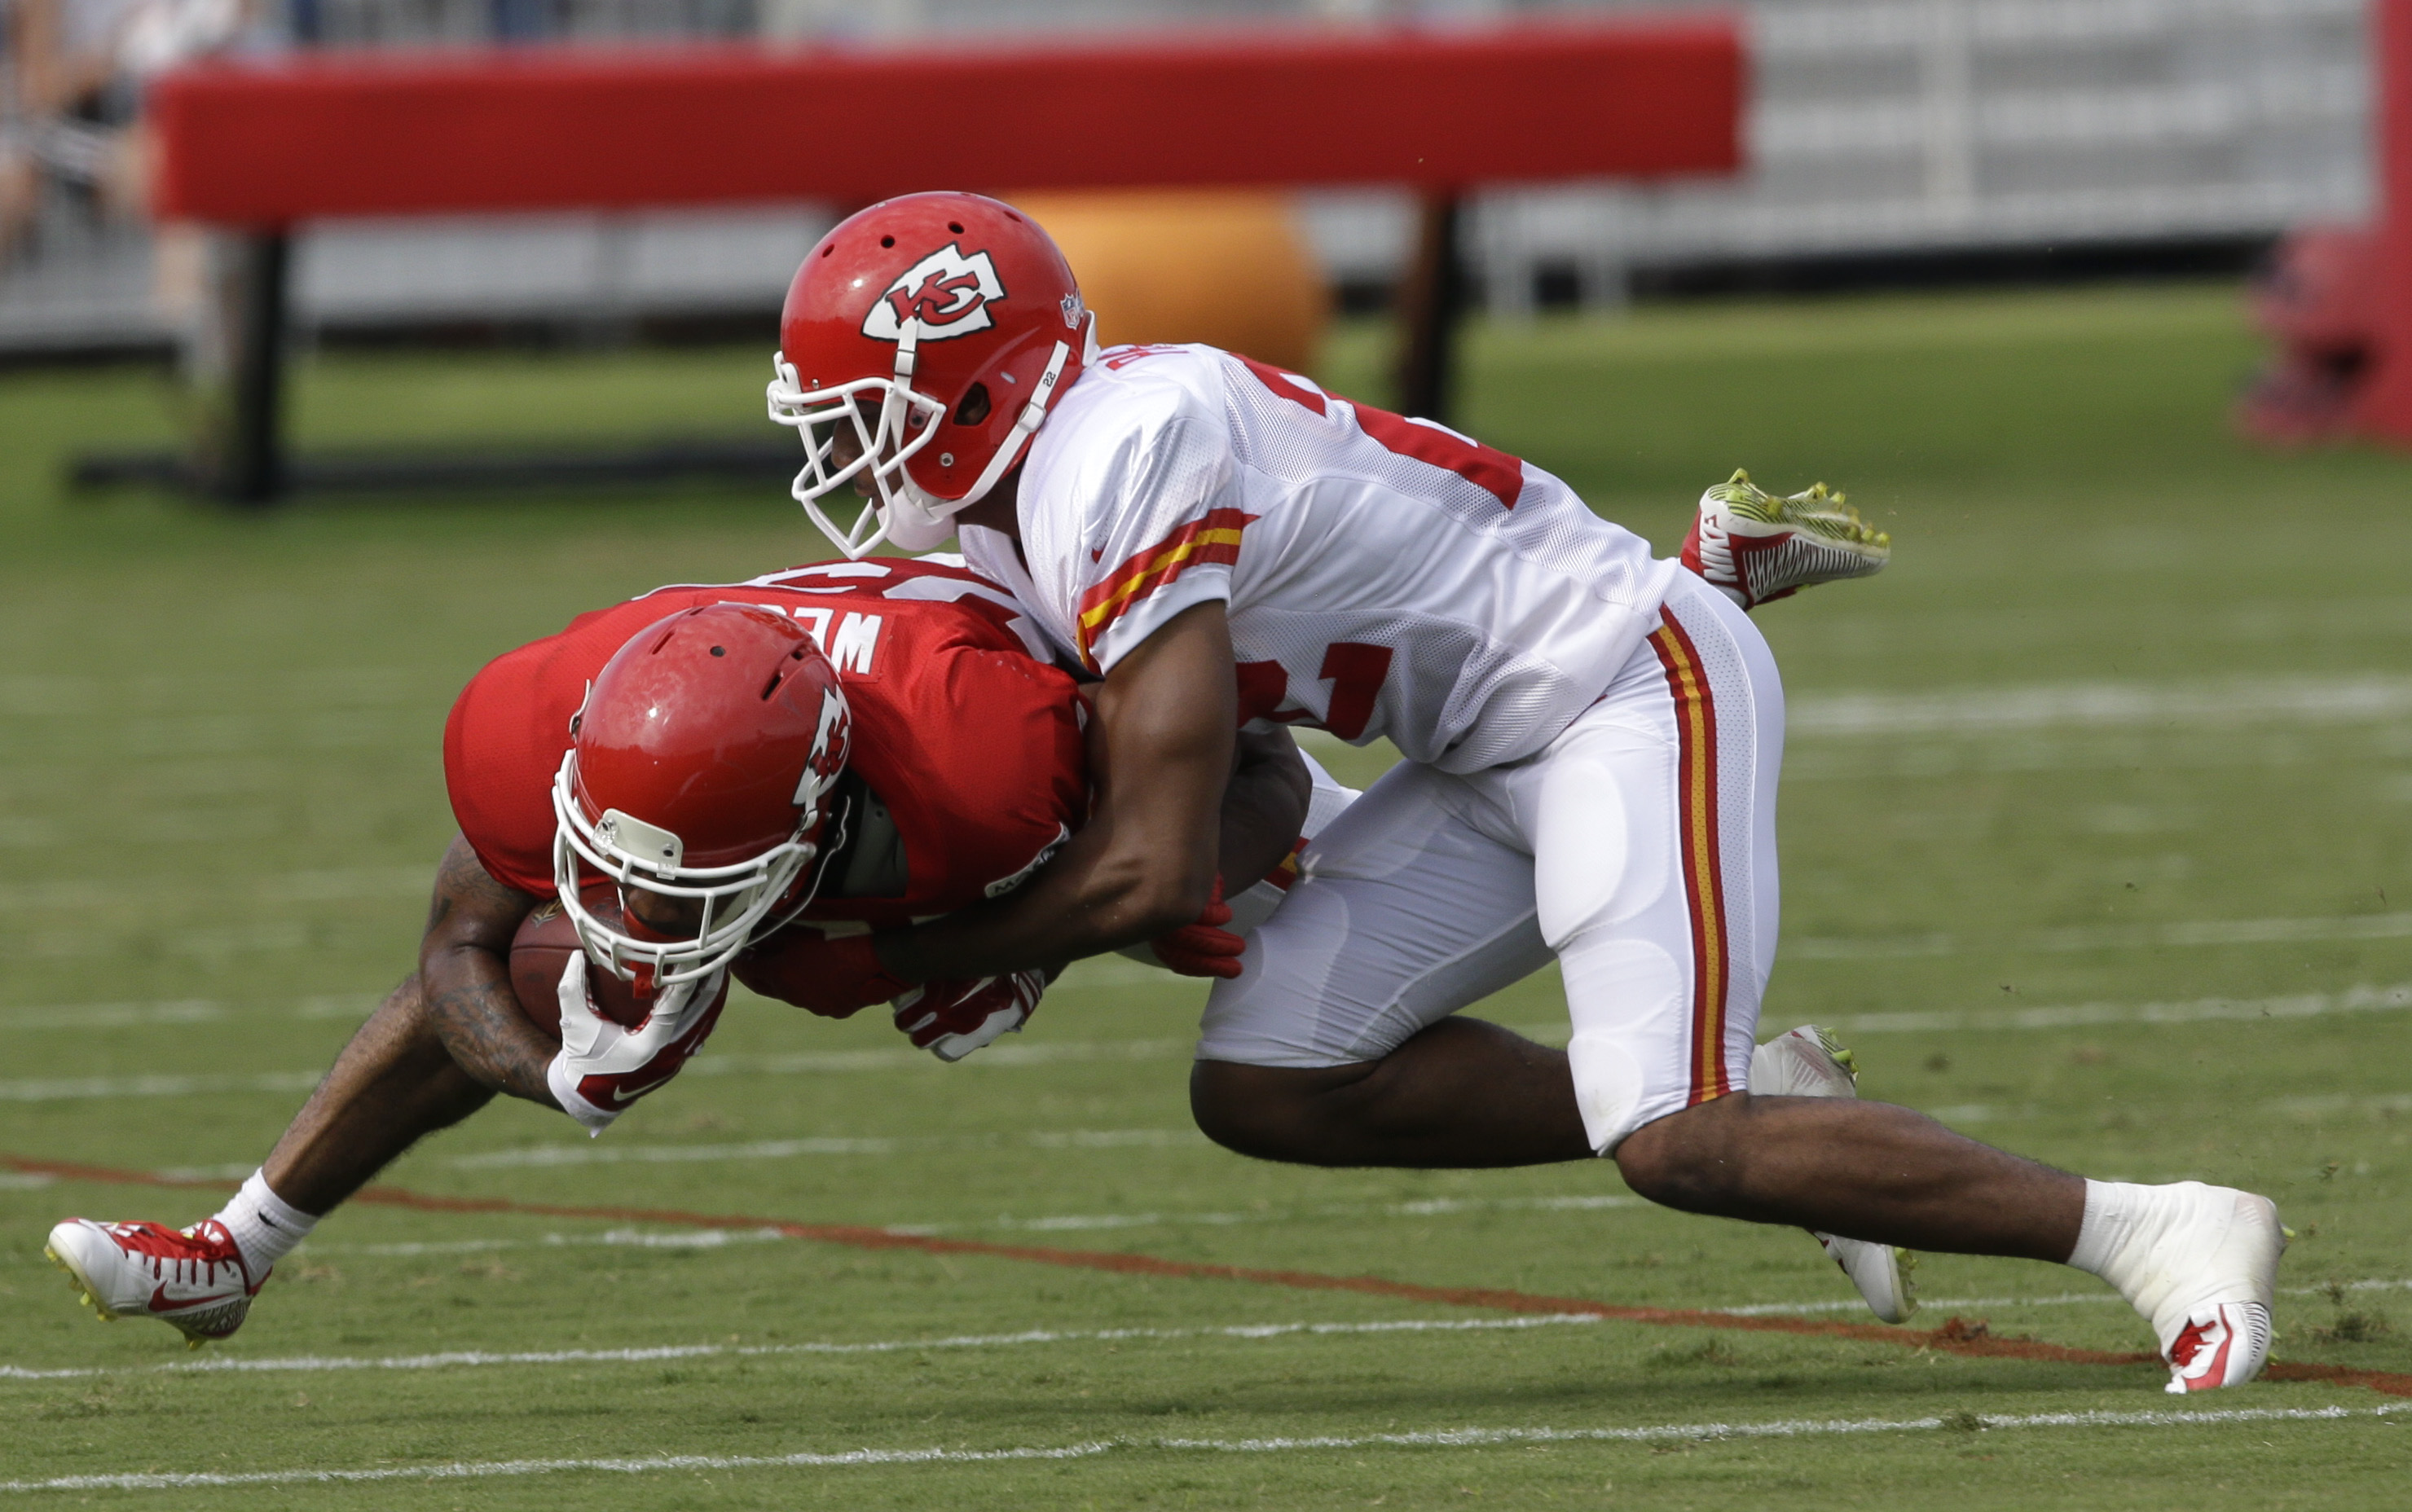 Kansas City Chiefs running back Charcandrick West (35) is tackled by cornerback Marcus Peters, right, during NFL football training camp in St. Joseph, Mo., Tuesday, Aug. 4, 2015. (AP Photo/Orlin Wagner)